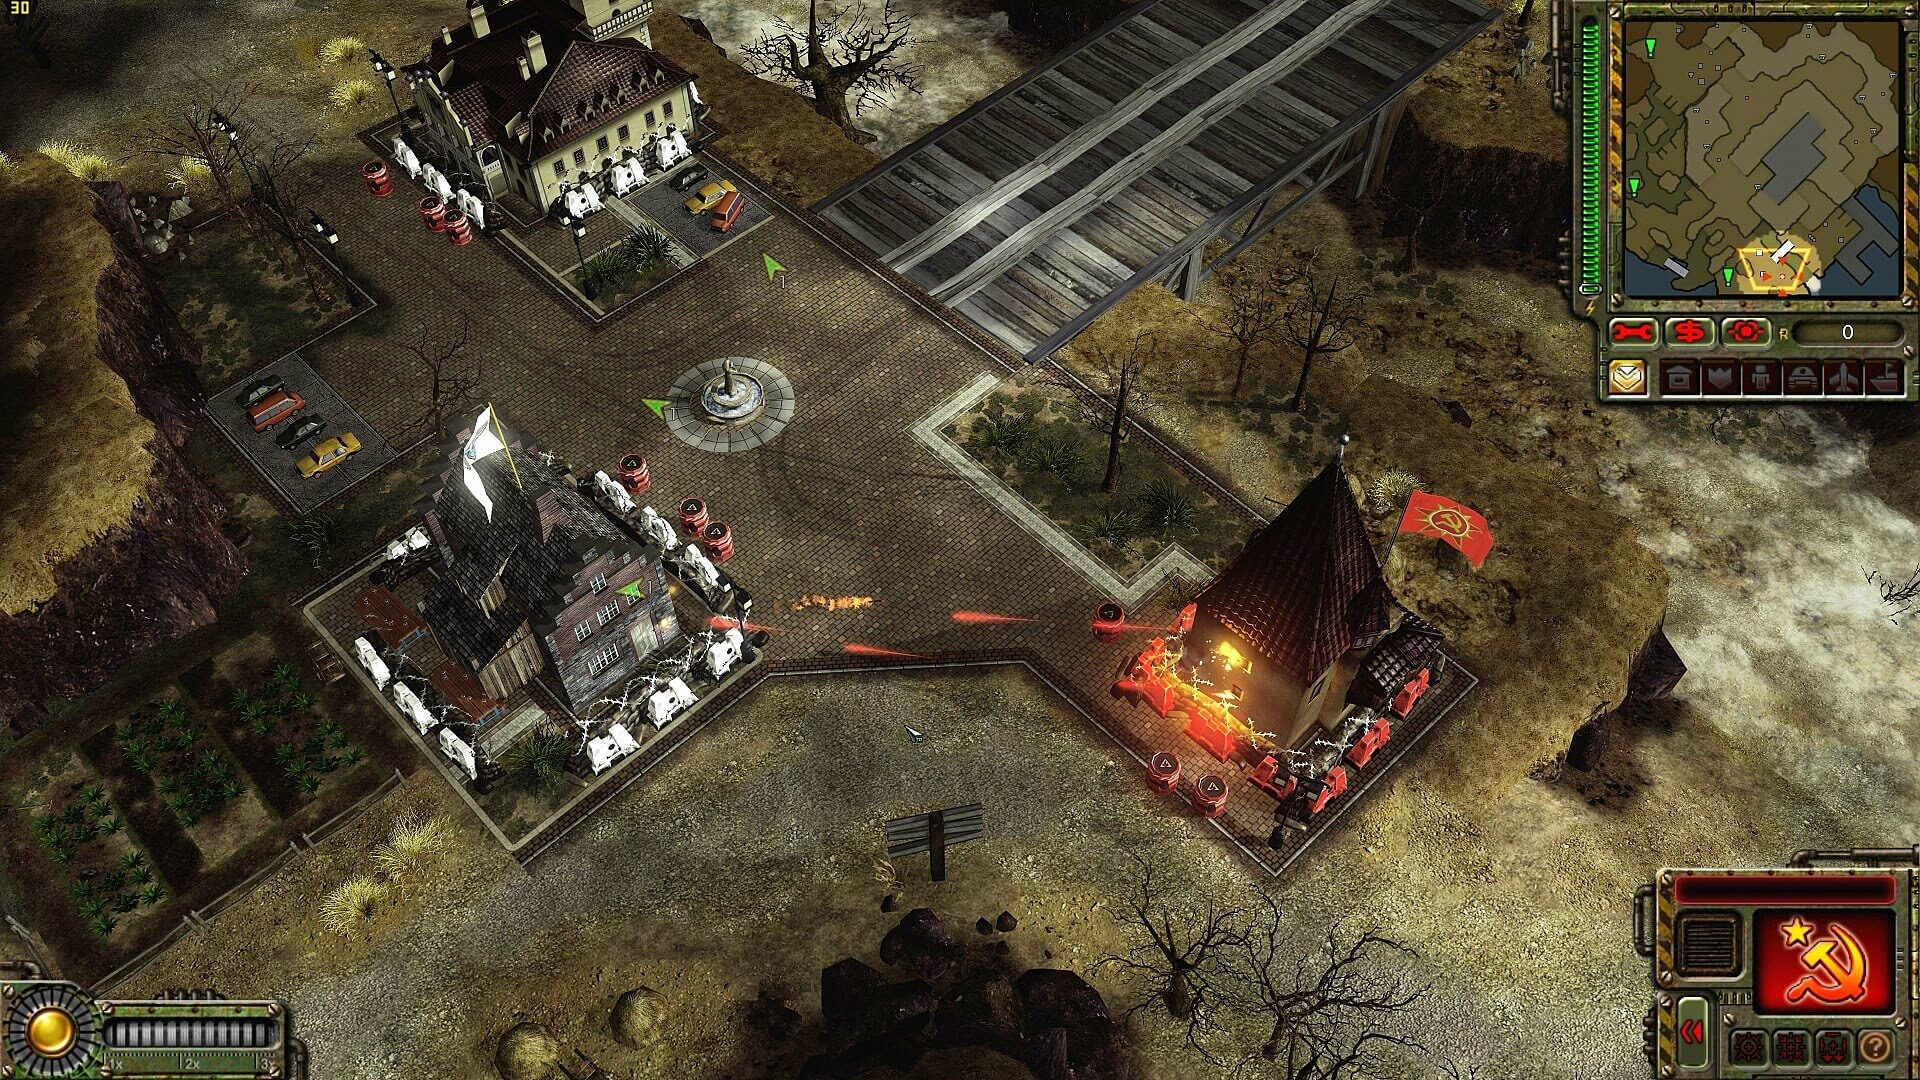 Command & Conquer: Red Alert - Free download and software